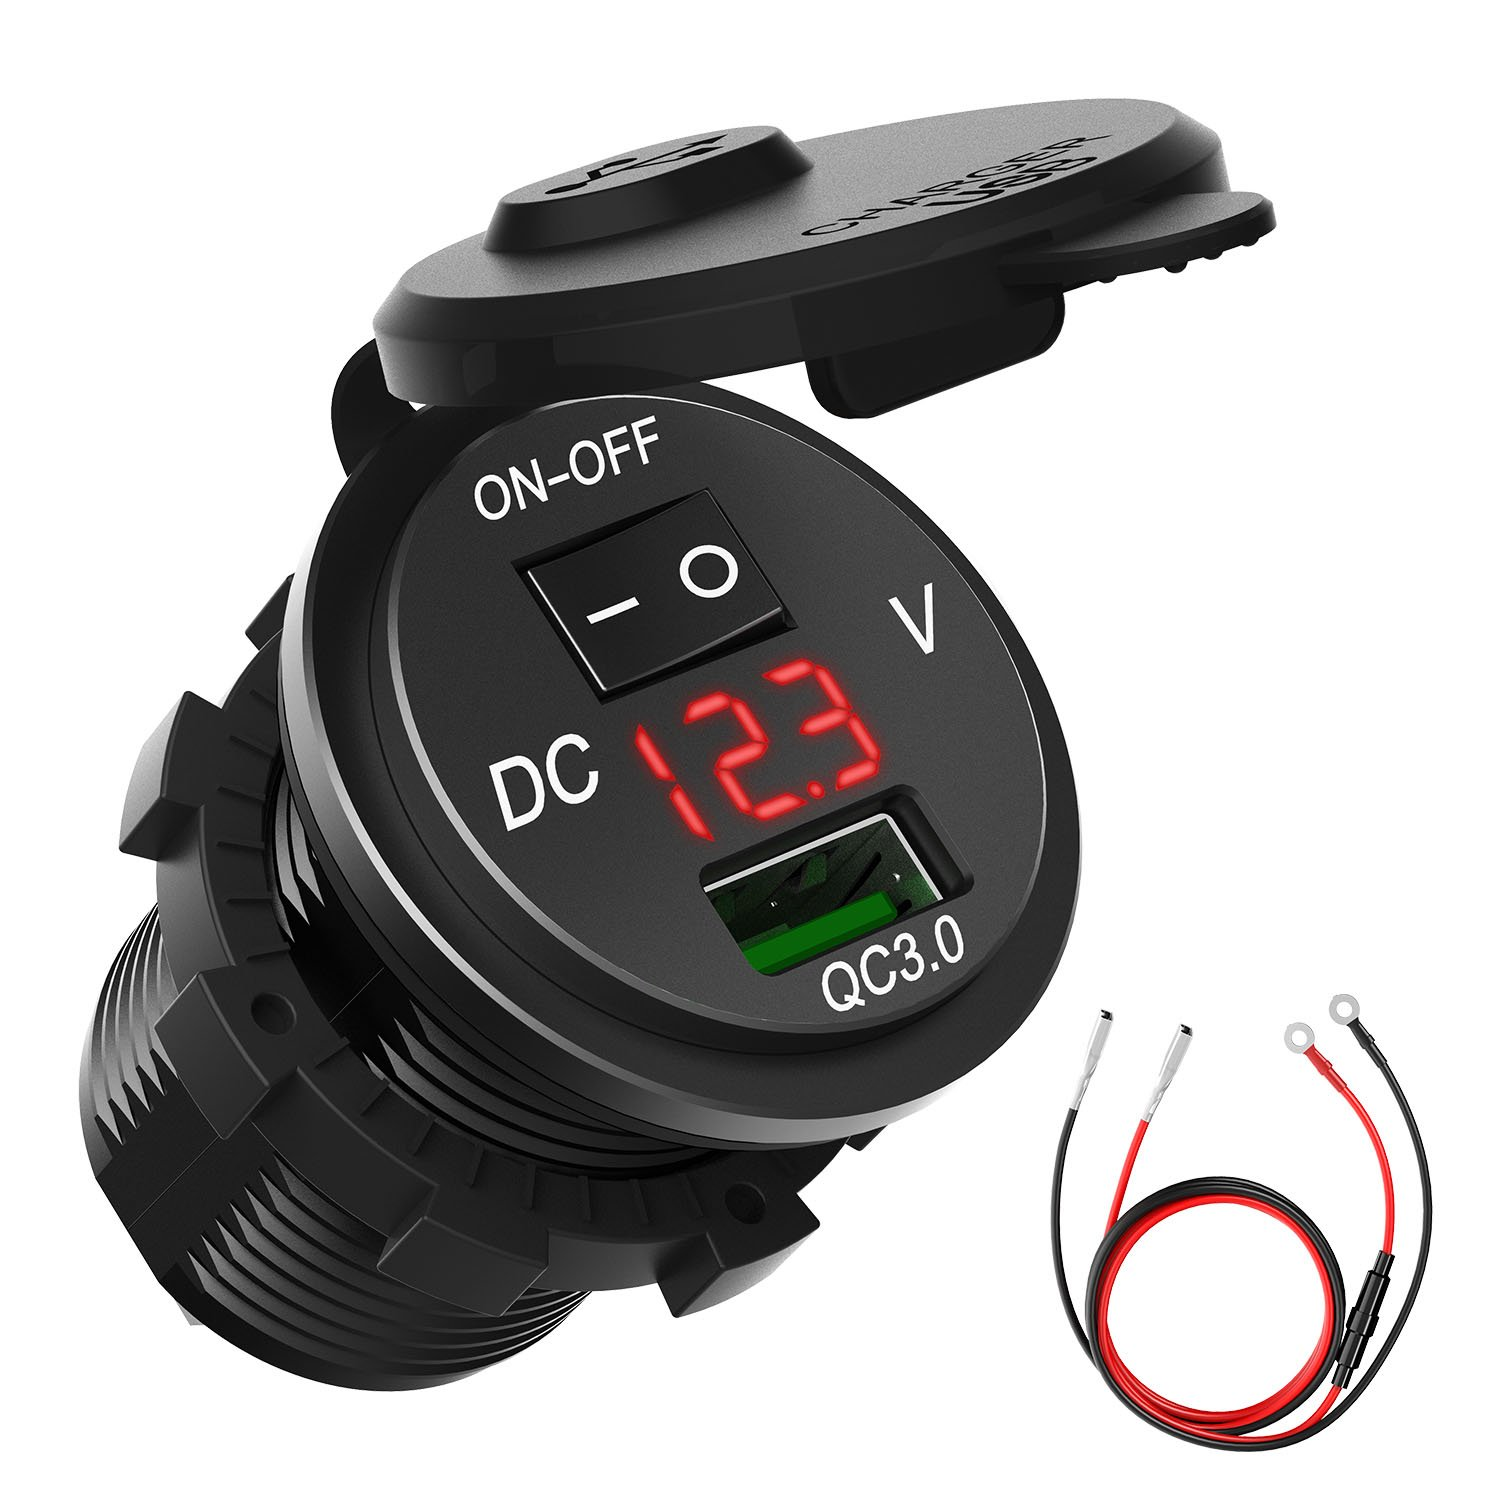 USB Charger Socket, CHGeek 18W 12V/24V Quick Charge 3.0 USB Car Charger Power Outlet Adapter Waterproof with On Off Switch LED Digital Play for Car RV ATV Boat Marine Motorcycle Mobile